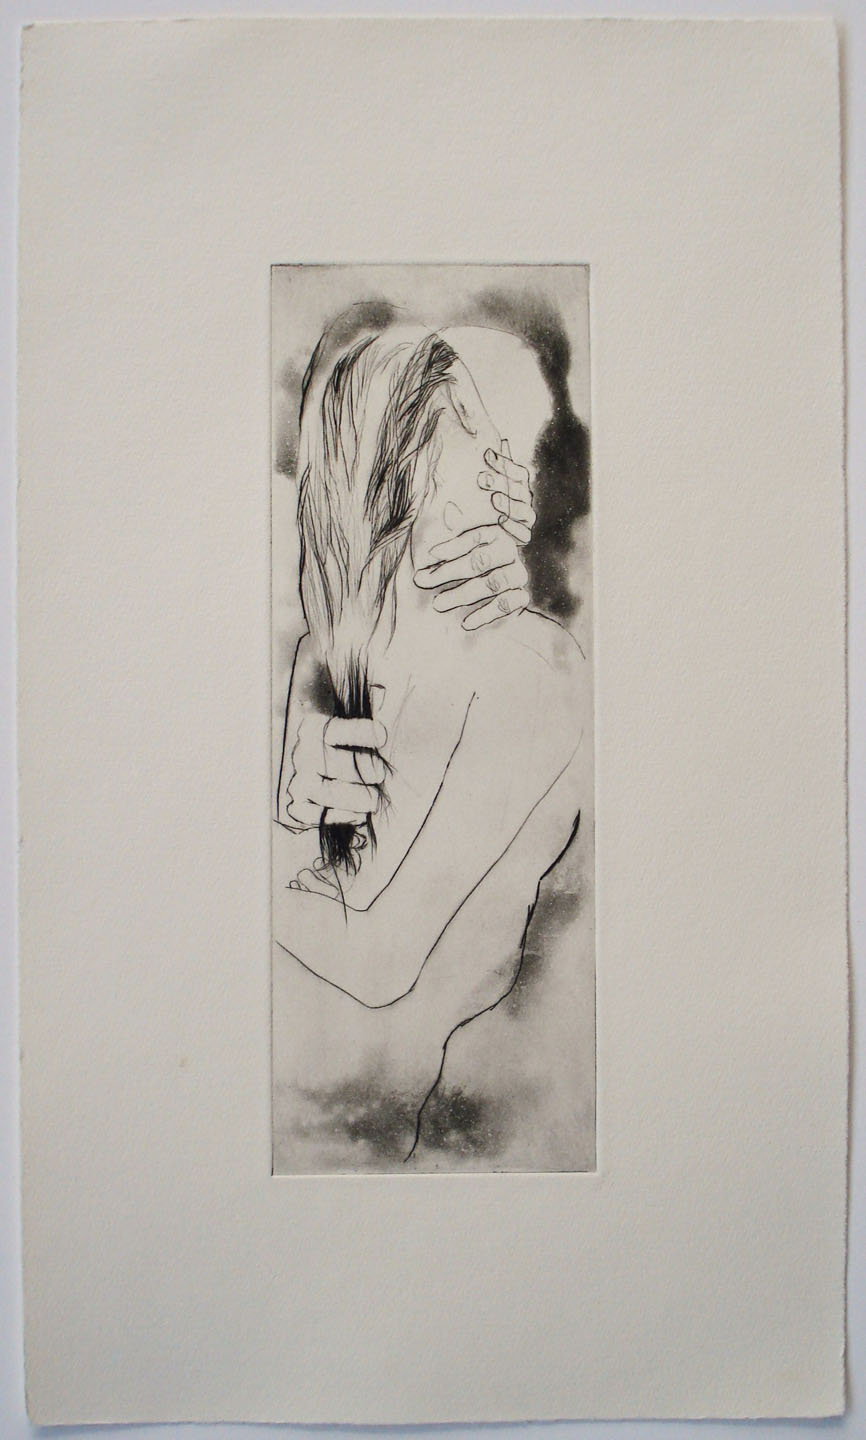 Untitled (hand pulling hair);2004    Drypoint/Spit-bite, 10 x 17 in